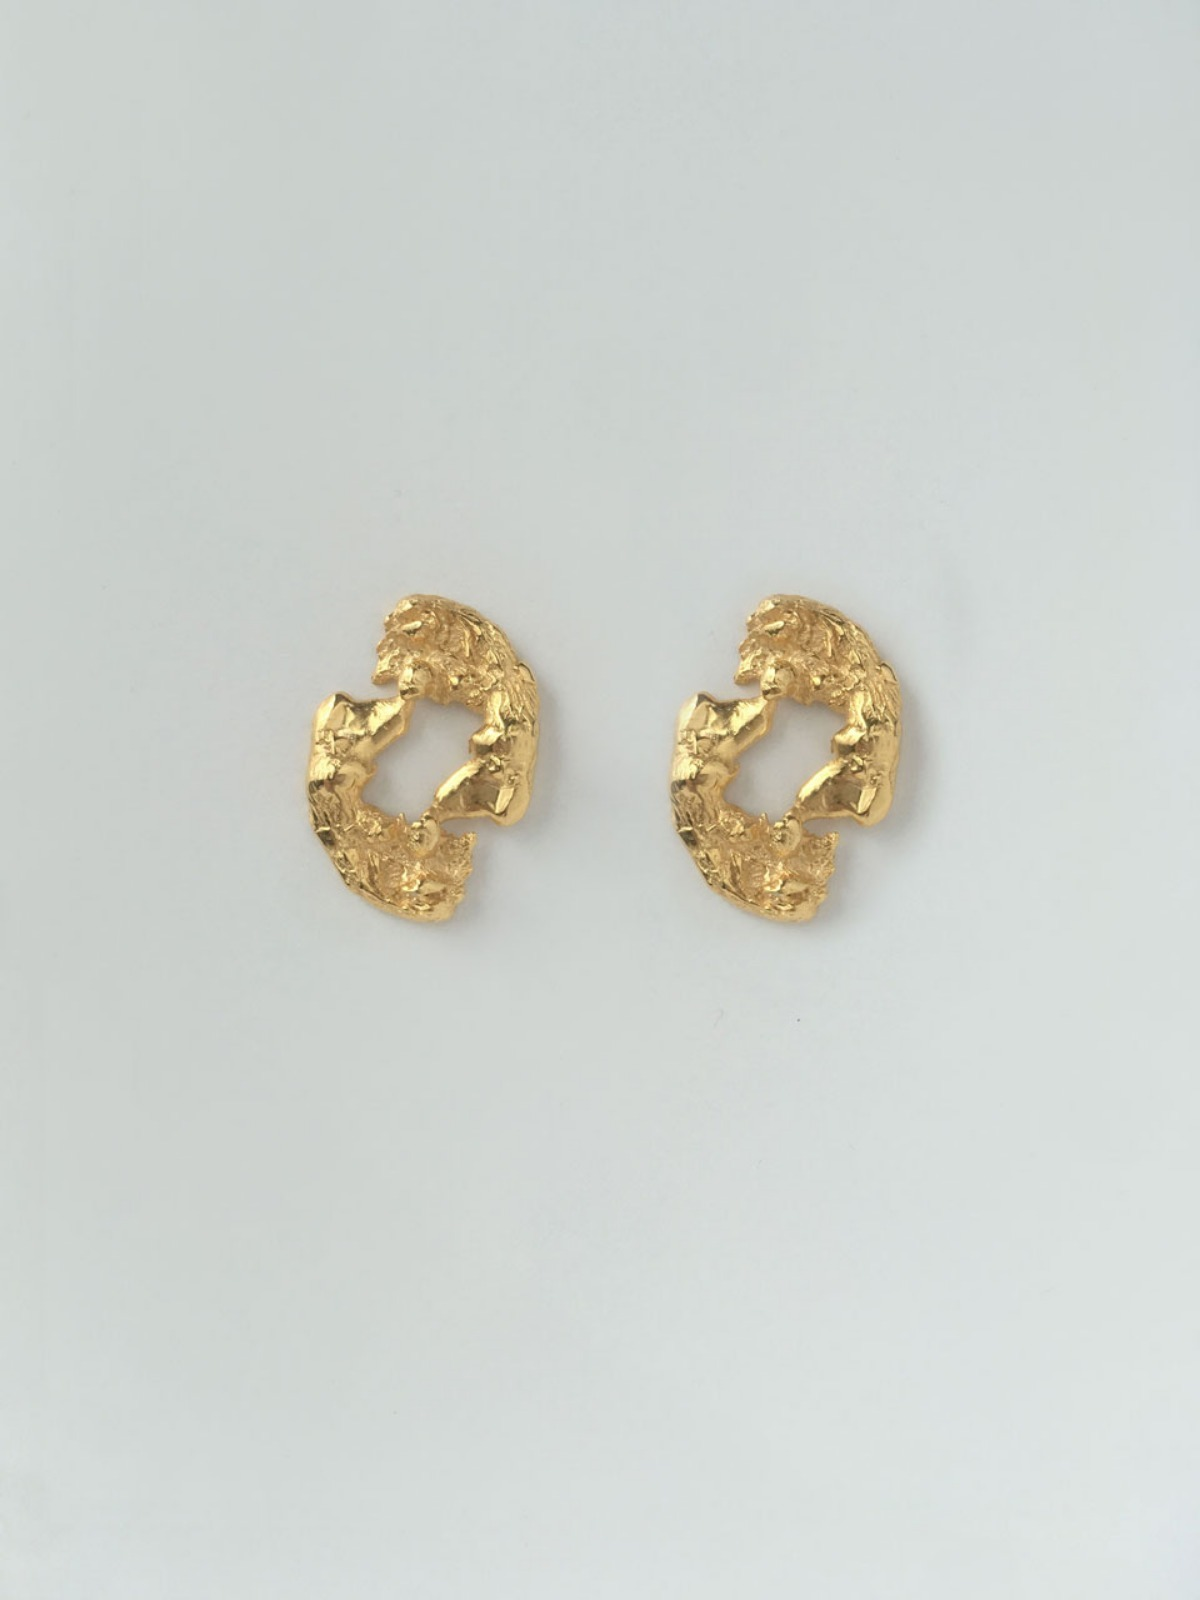 Flame hole earring